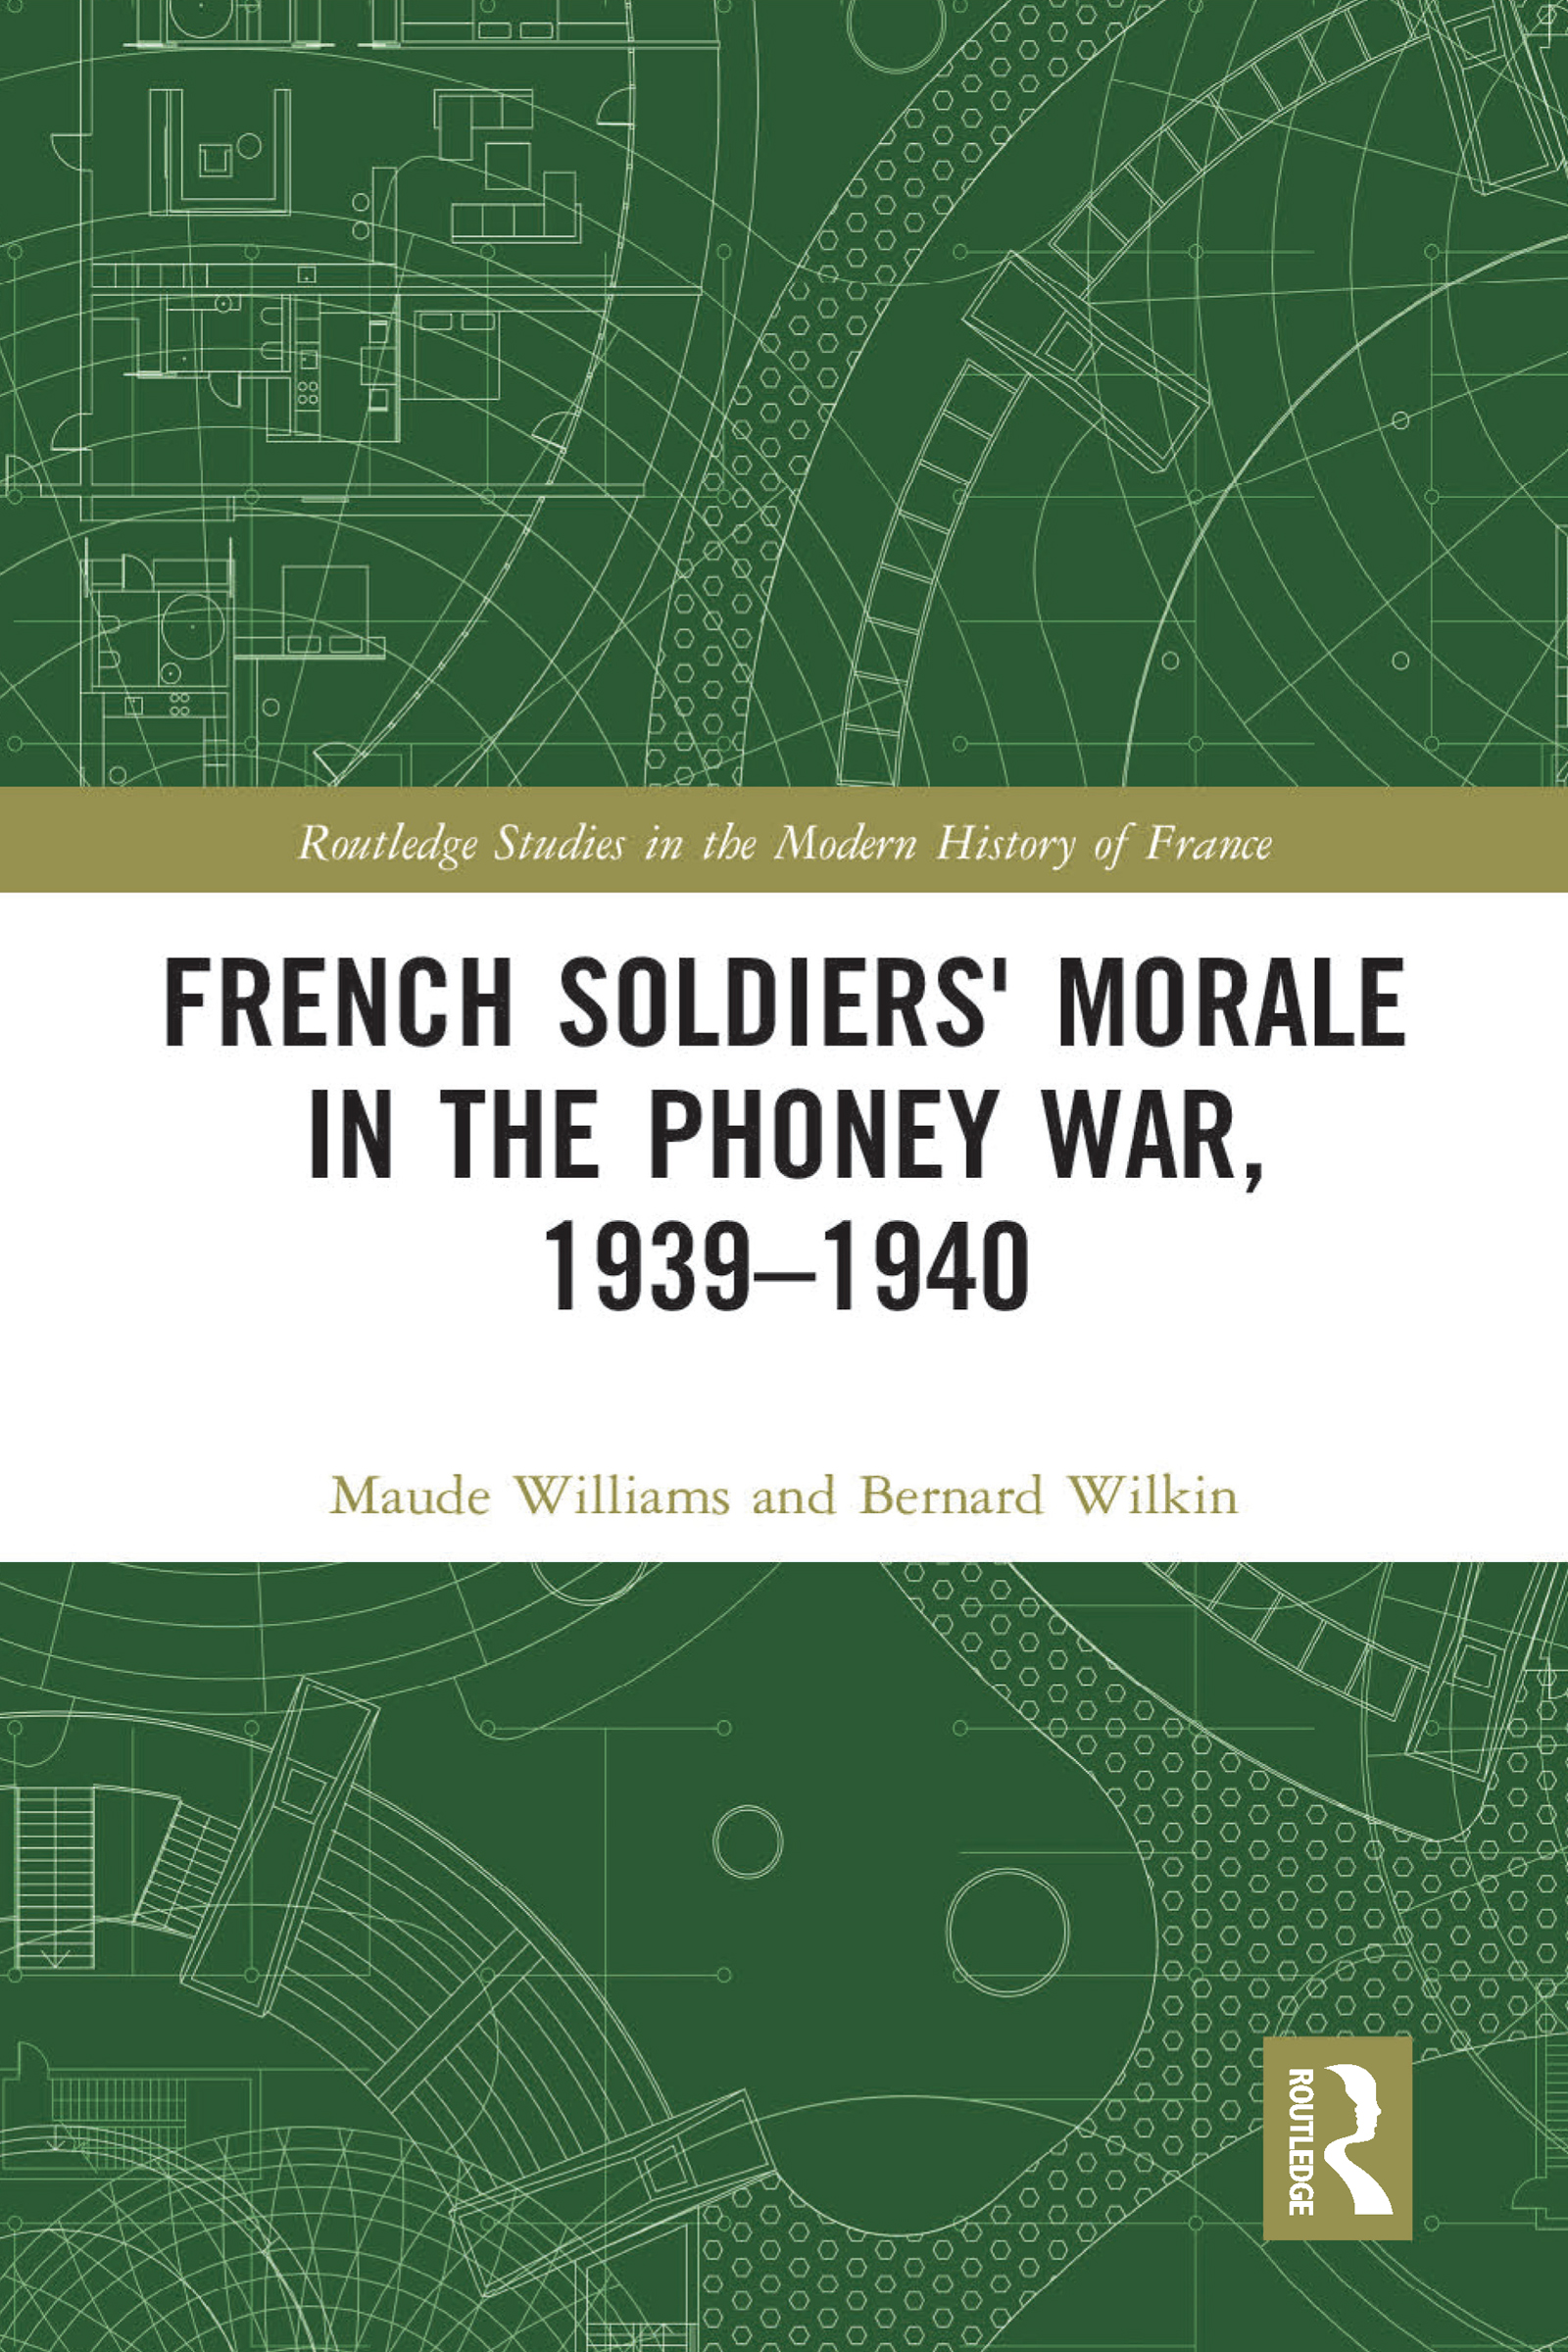 French Soldiers' Morale in the Phoney War, 1939-1940